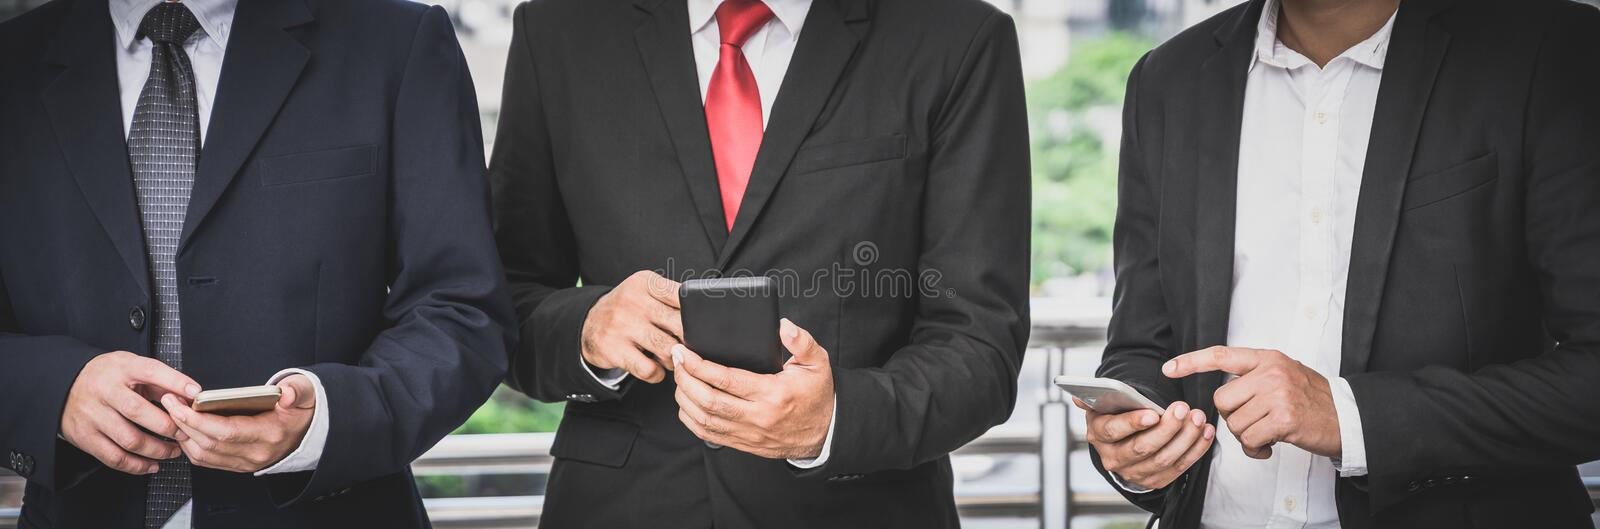 Business groups are using mobile phones to make business contacts, trade, communications, stocks, finance, technology royalty free stock images